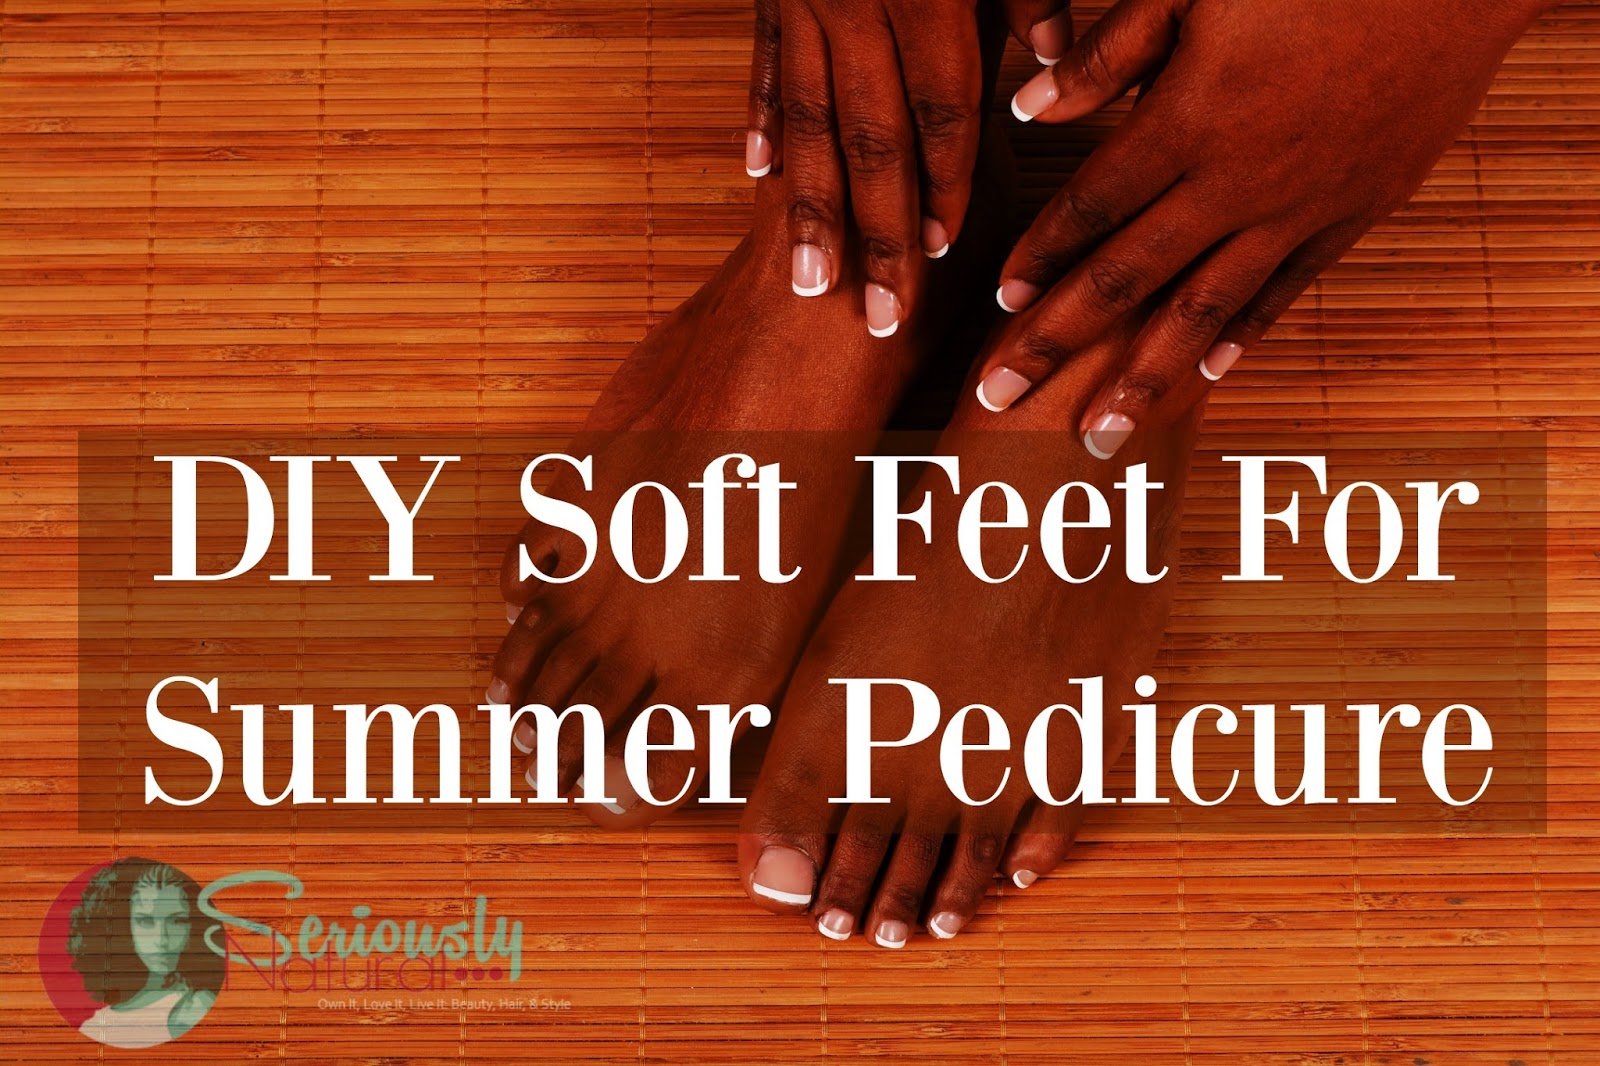 Quick DIY Soft Feet For Summer Pedicure